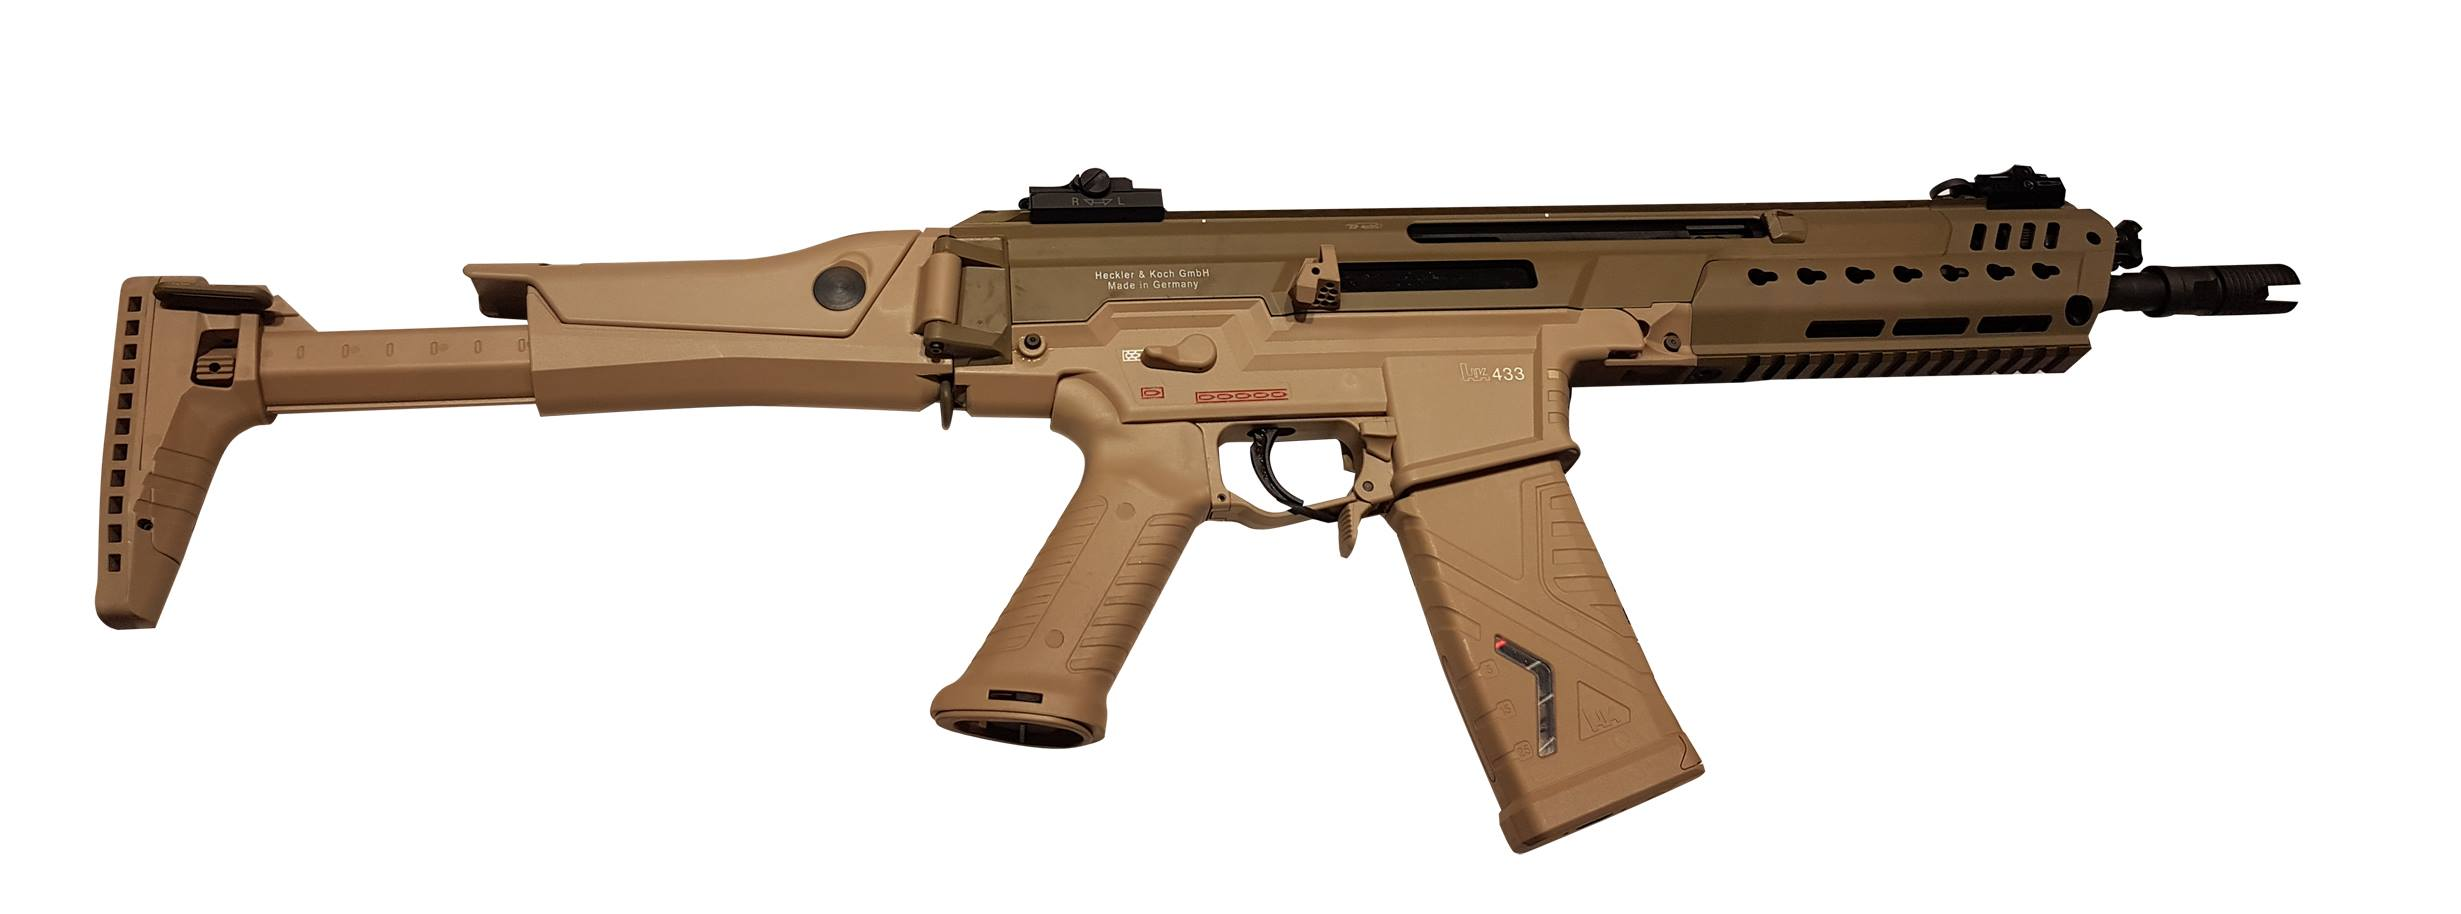 HK433 - The new assault rifle from HK-59380935_1050884945101921_6833357319430995968_o.jpg